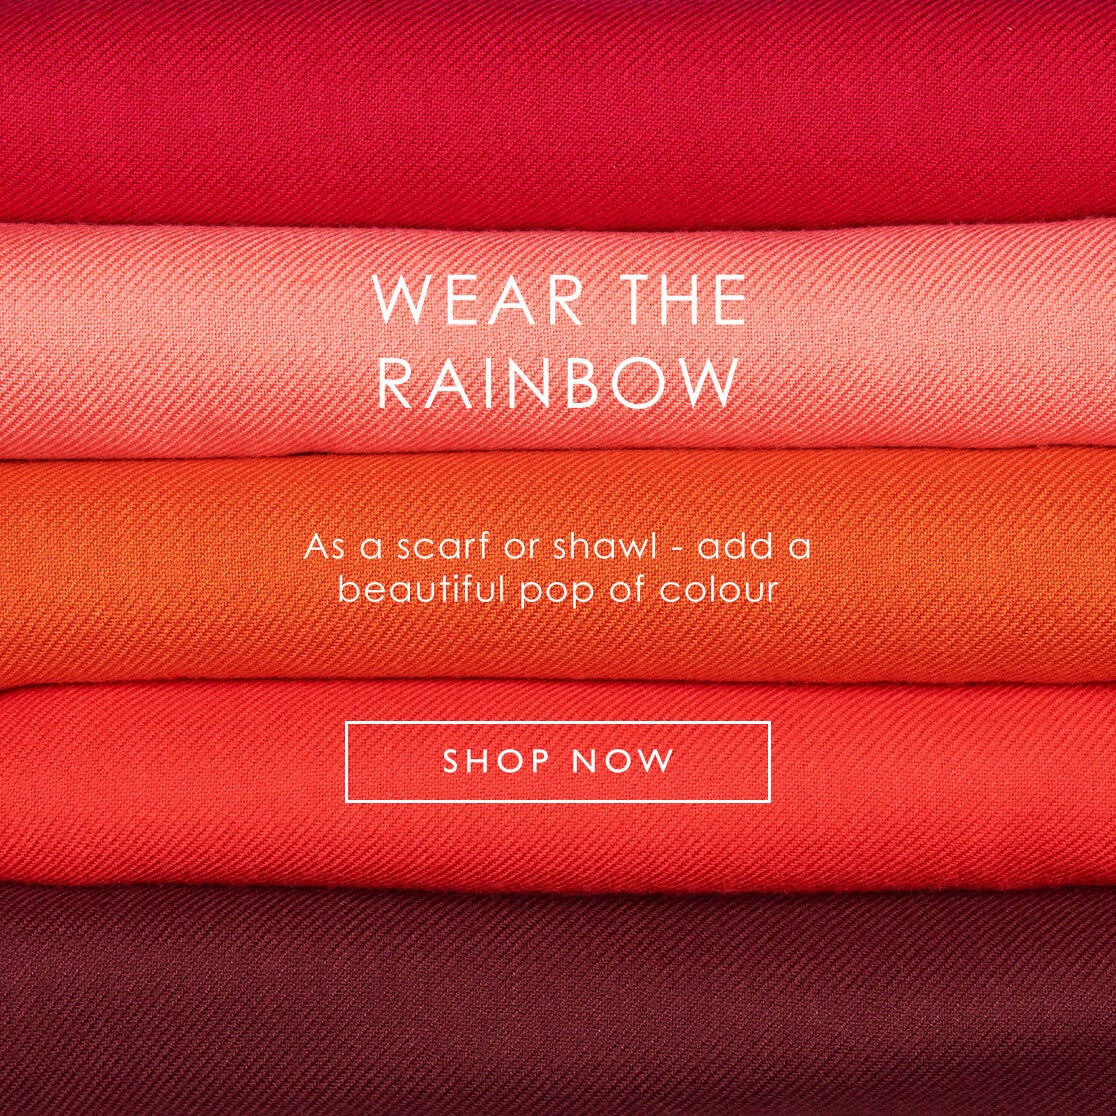 Wear the rainbow